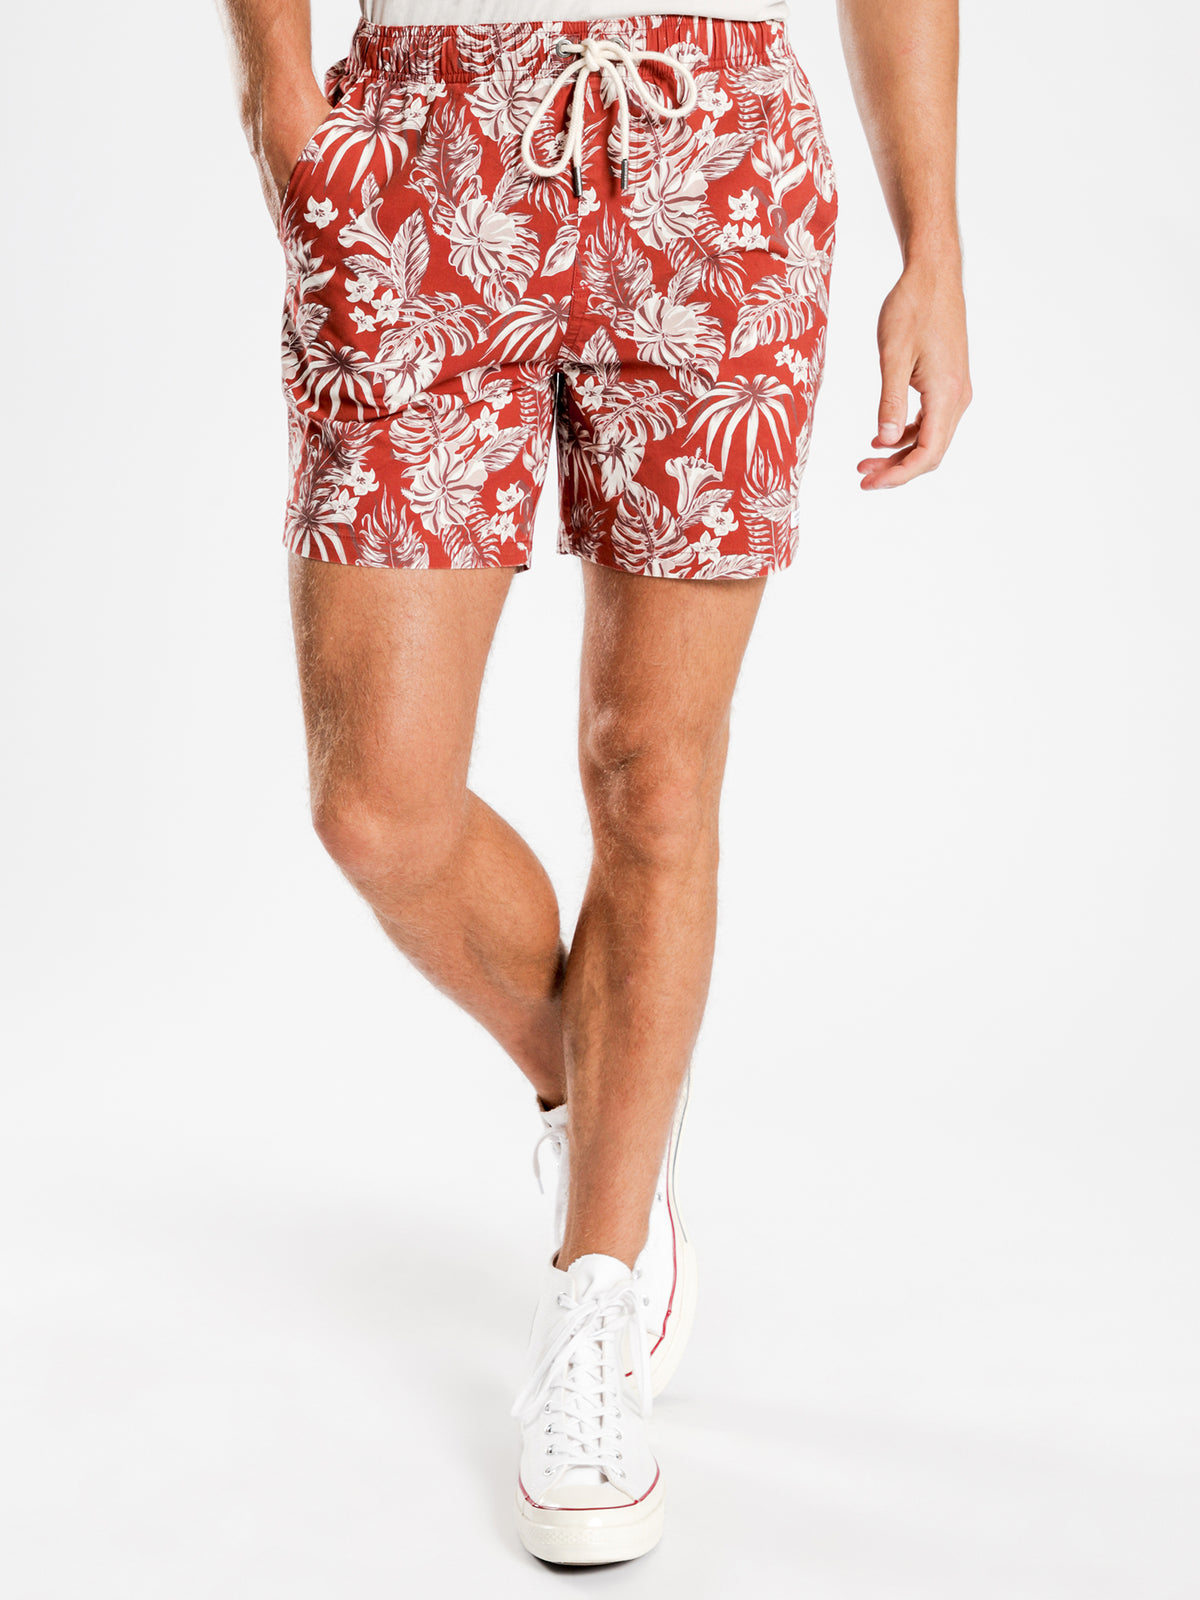 Mahalo Shorts in Burgundy Palms